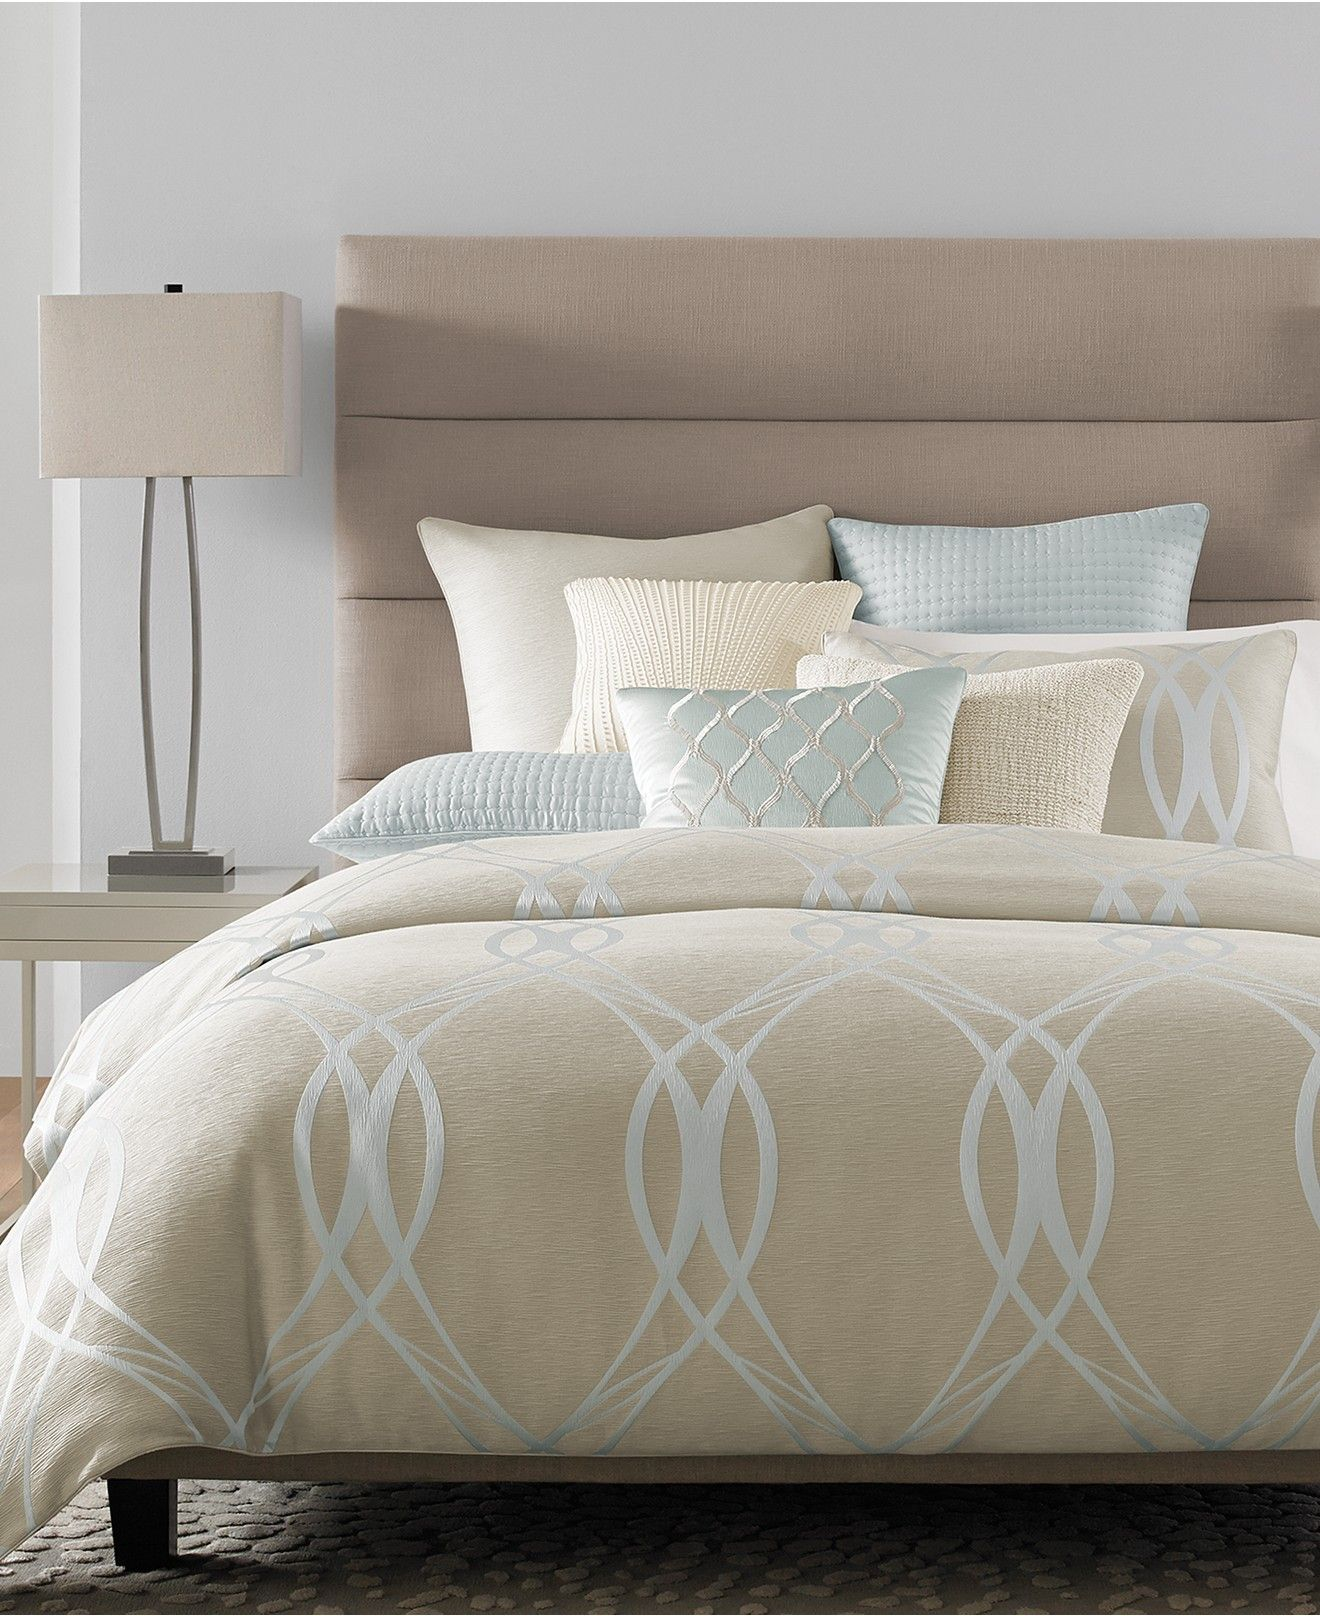 Hotel Collection Ogee Bedding Collection Only At Macy 39 S Bedding Collections Bed Amp Bat Hotel Collection Bedding Hotel Bedding Sets Hotel Collection